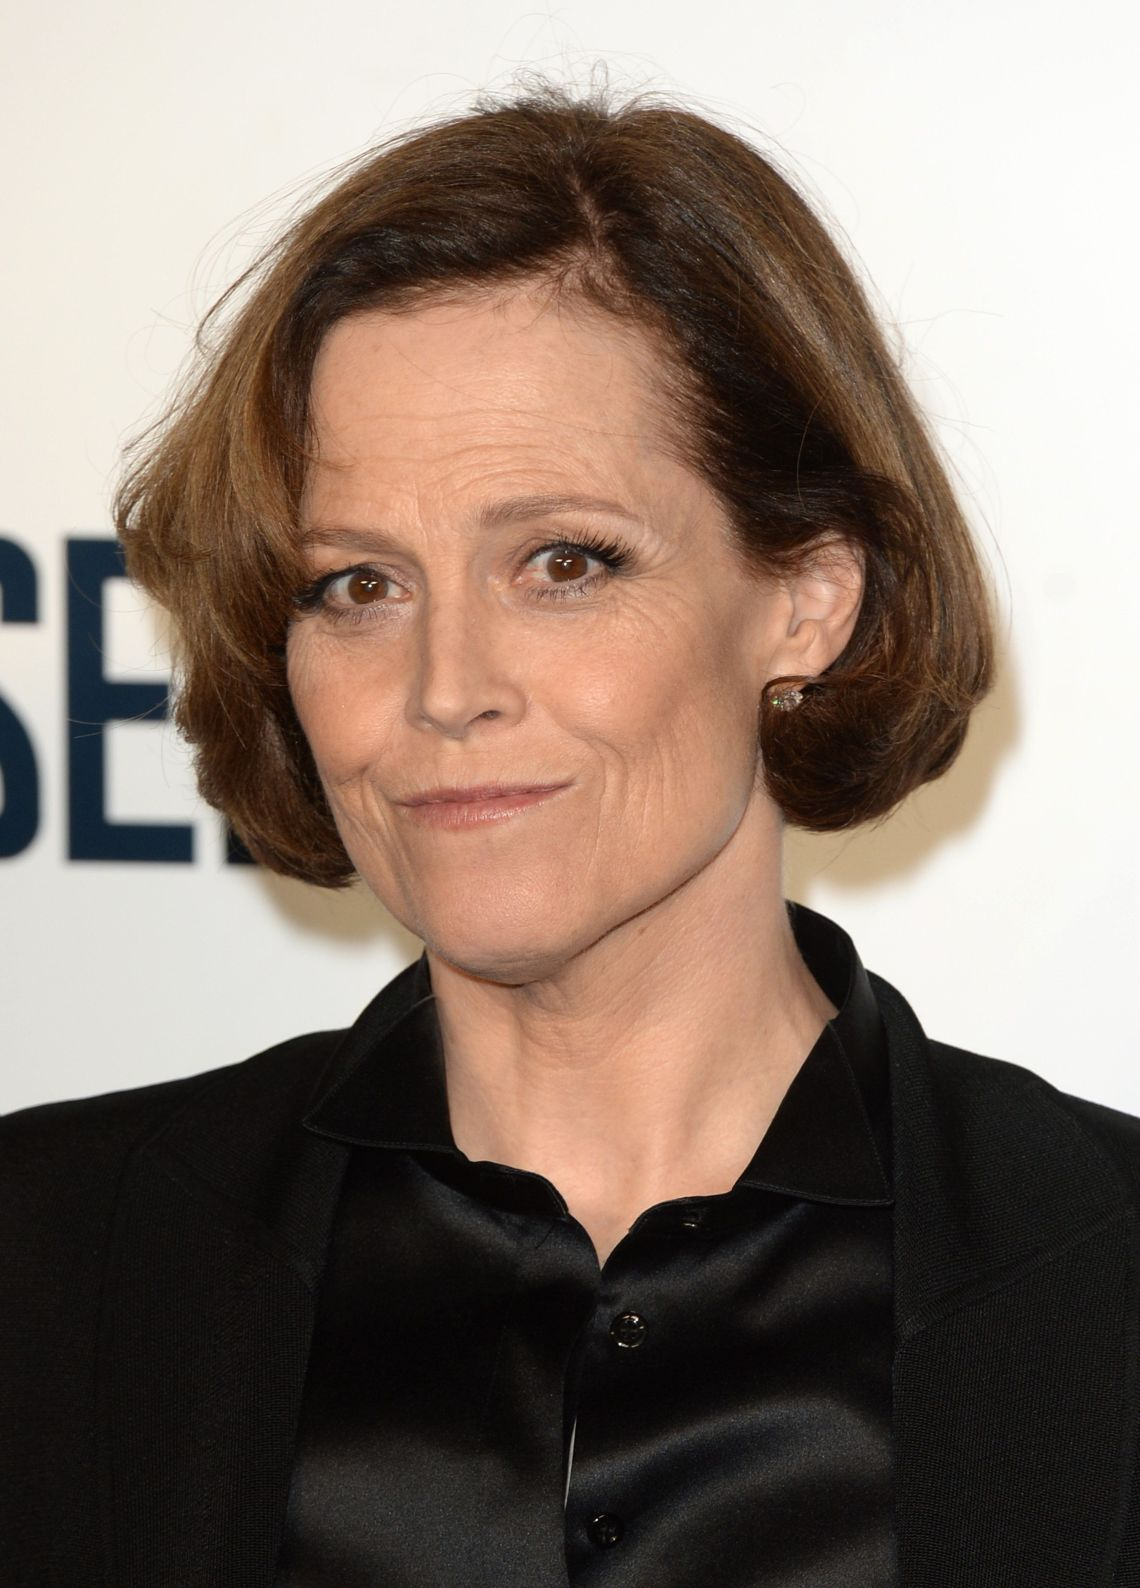 Sigourney's racked up three nominations over the years but sadly, the win has alluded her. At the 1989 ceremony, she was up for both the Best Actress and Best Supporting Actress prizes, but lost out to Jodie Foster and Geena Davis, respectively.